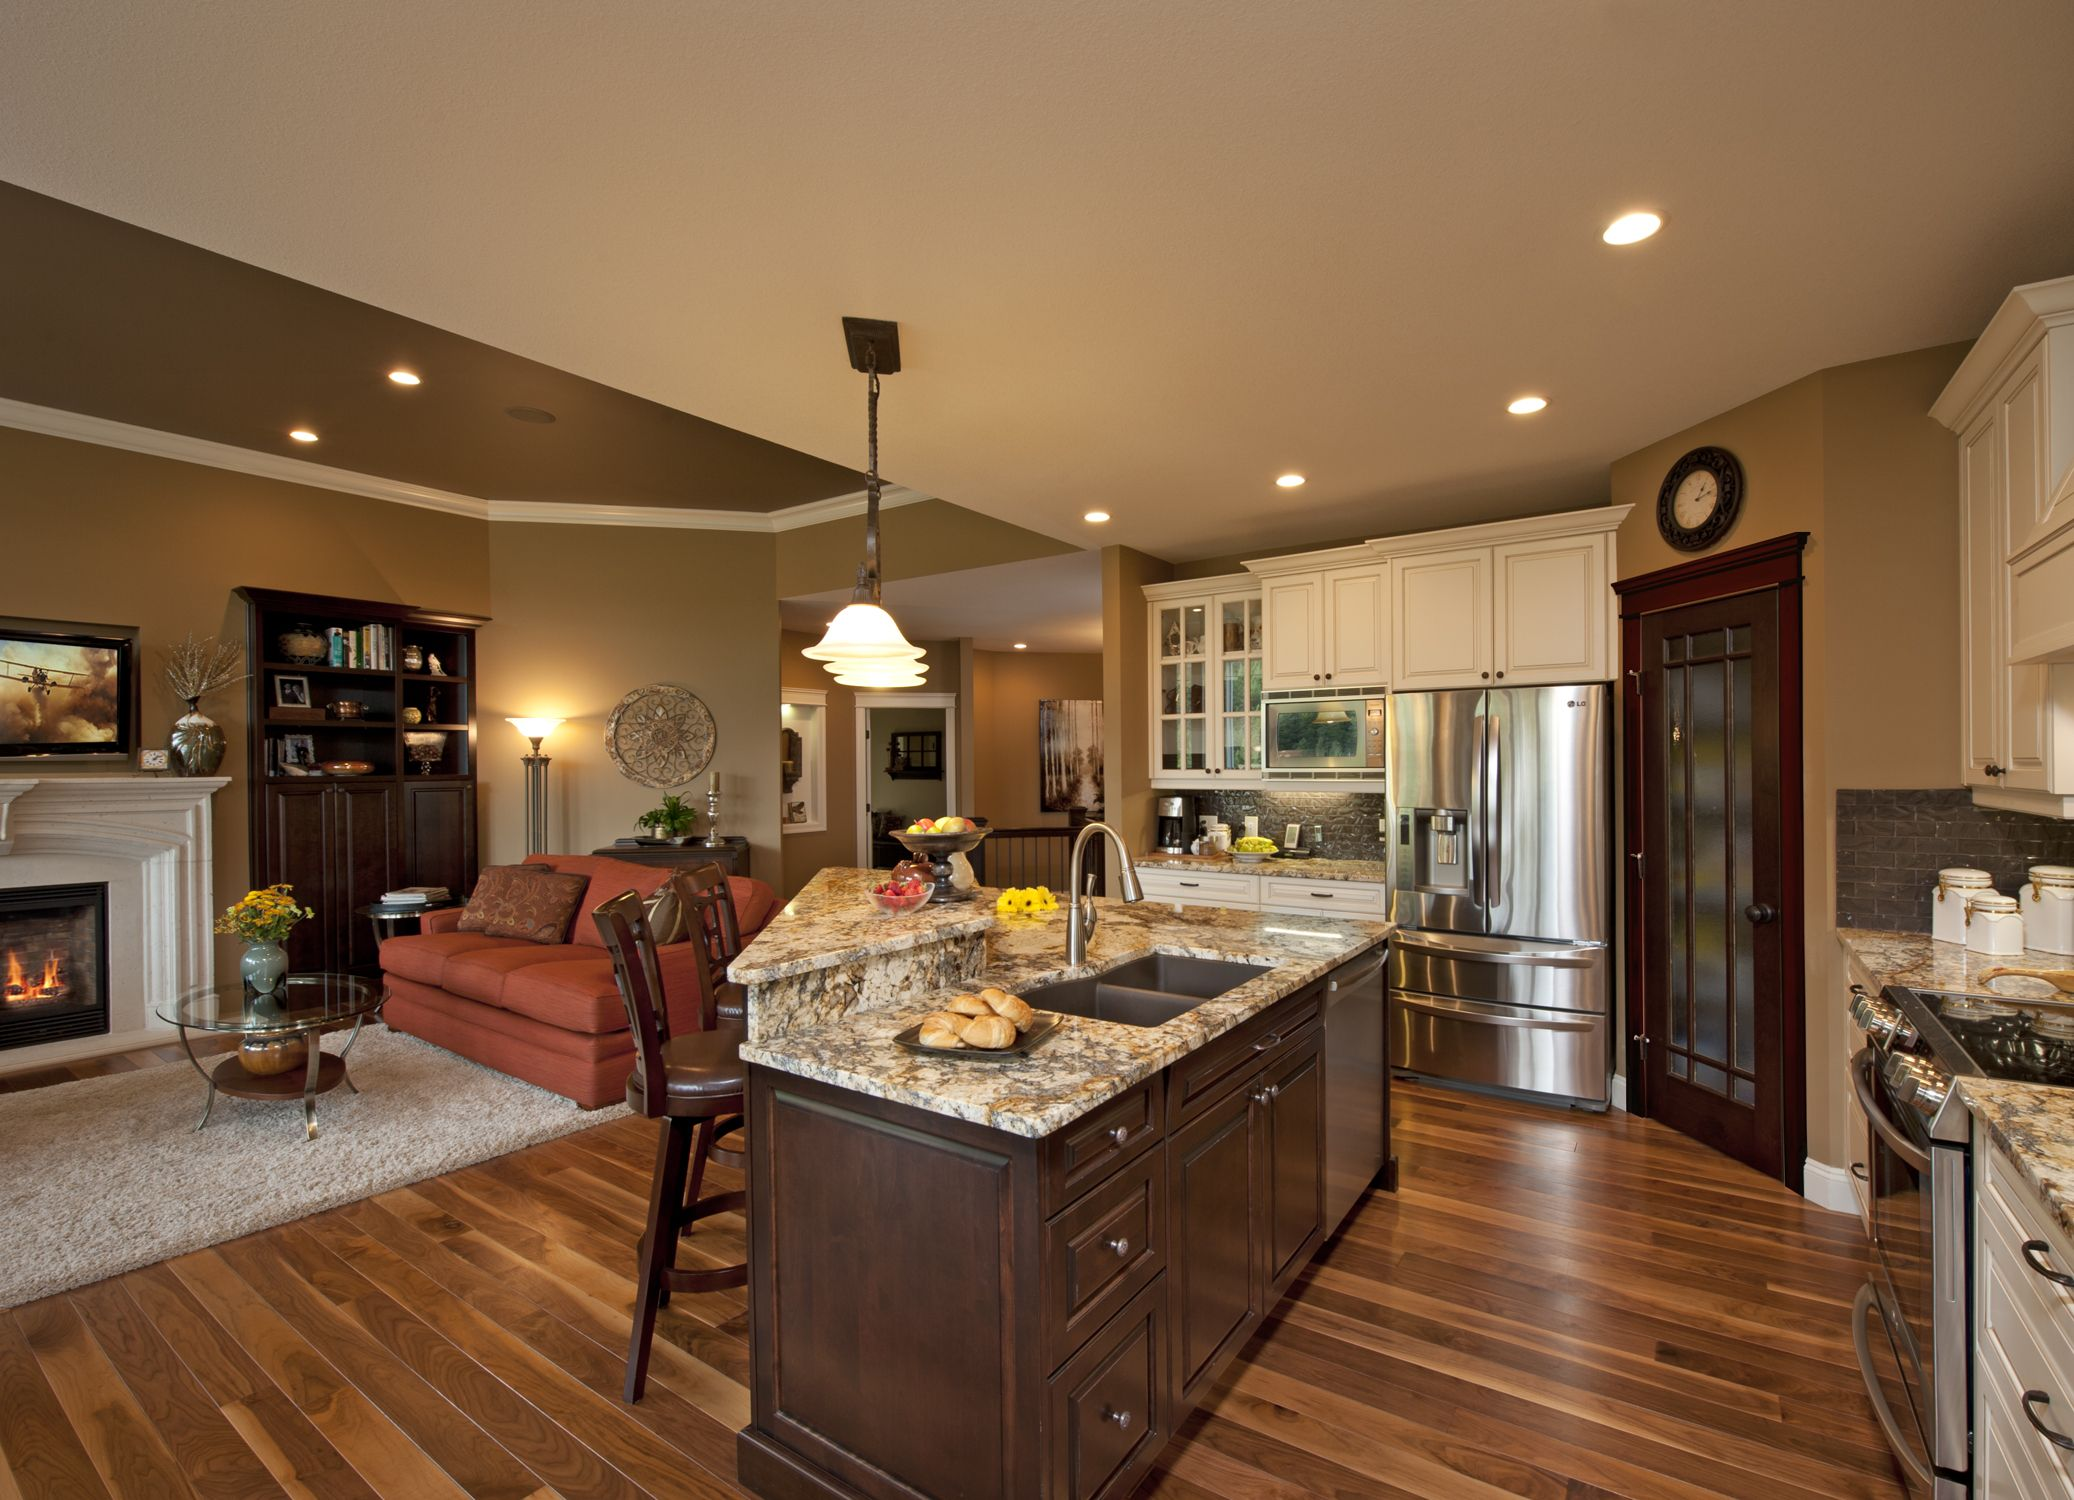 Another Kitchen Family Room Combo Kitchen Family Room Combo Pinterest Kitchen Family Rooms